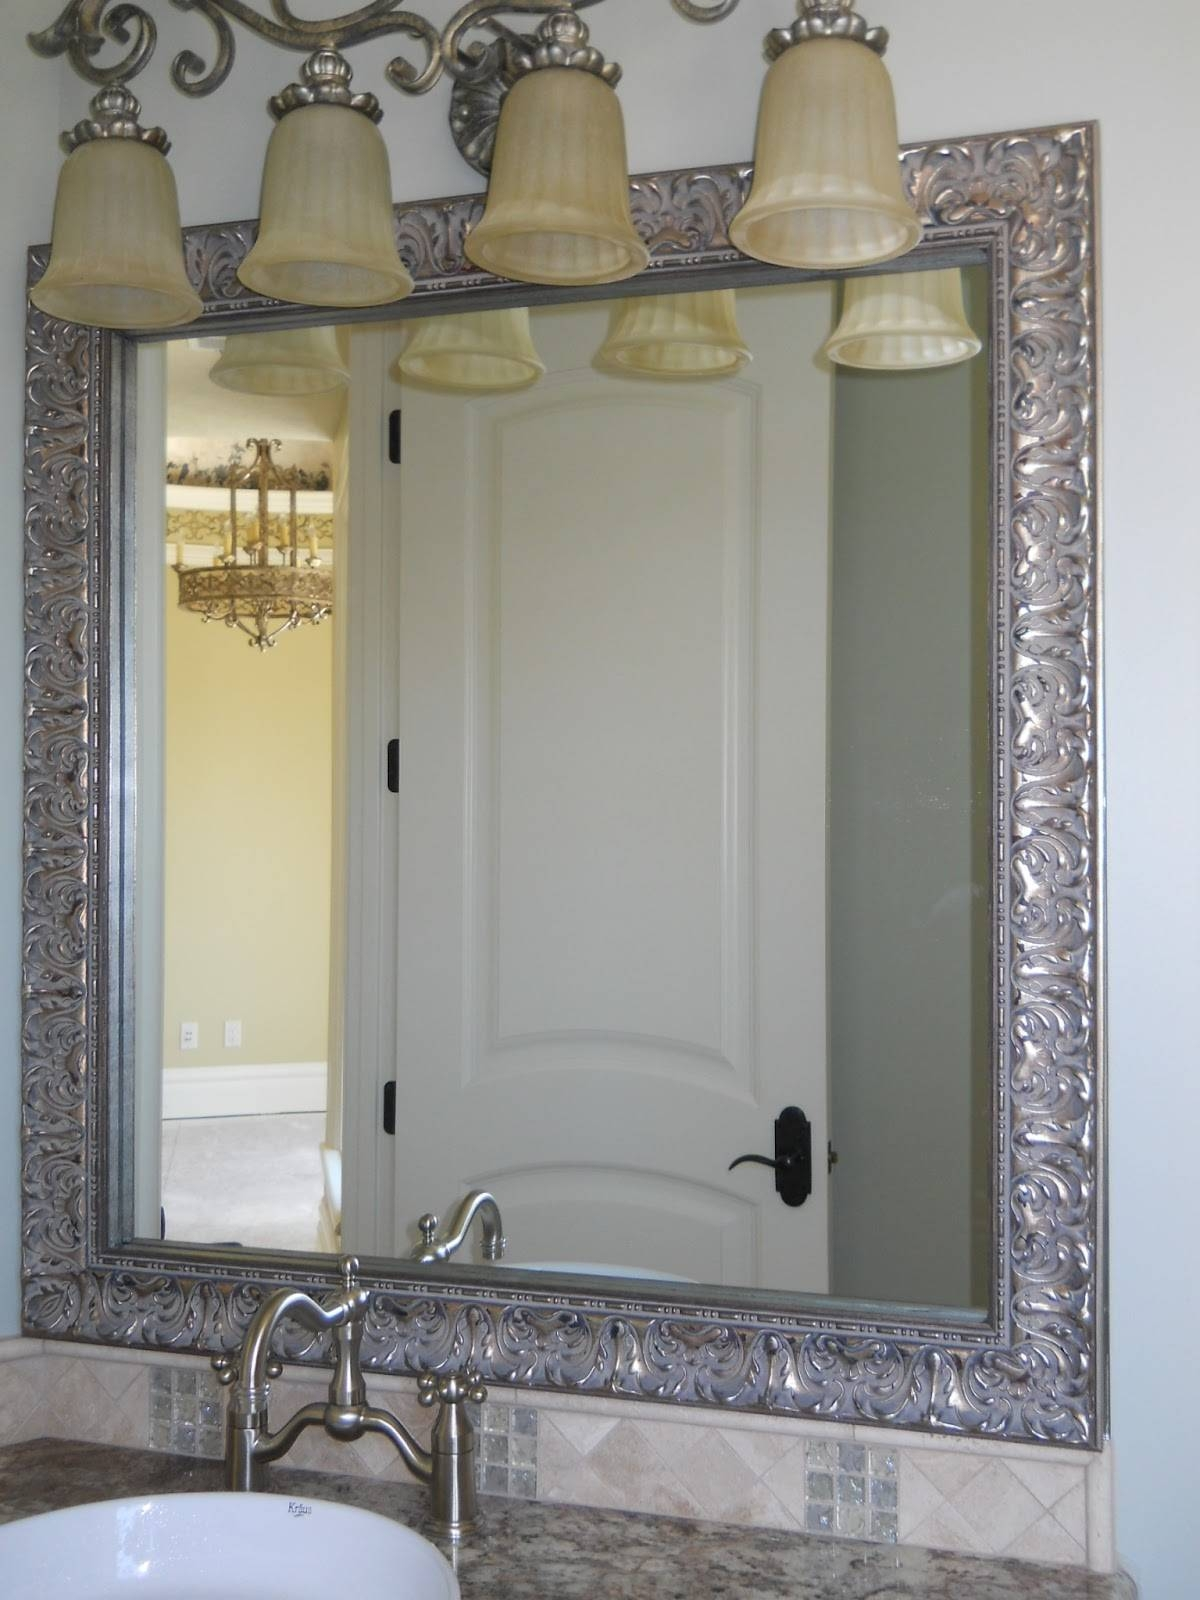 Fancy Silver Framed Wall Mirrors Bathroom 13 About Remodel With regarding Big Silver Mirrors (Image 15 of 25)